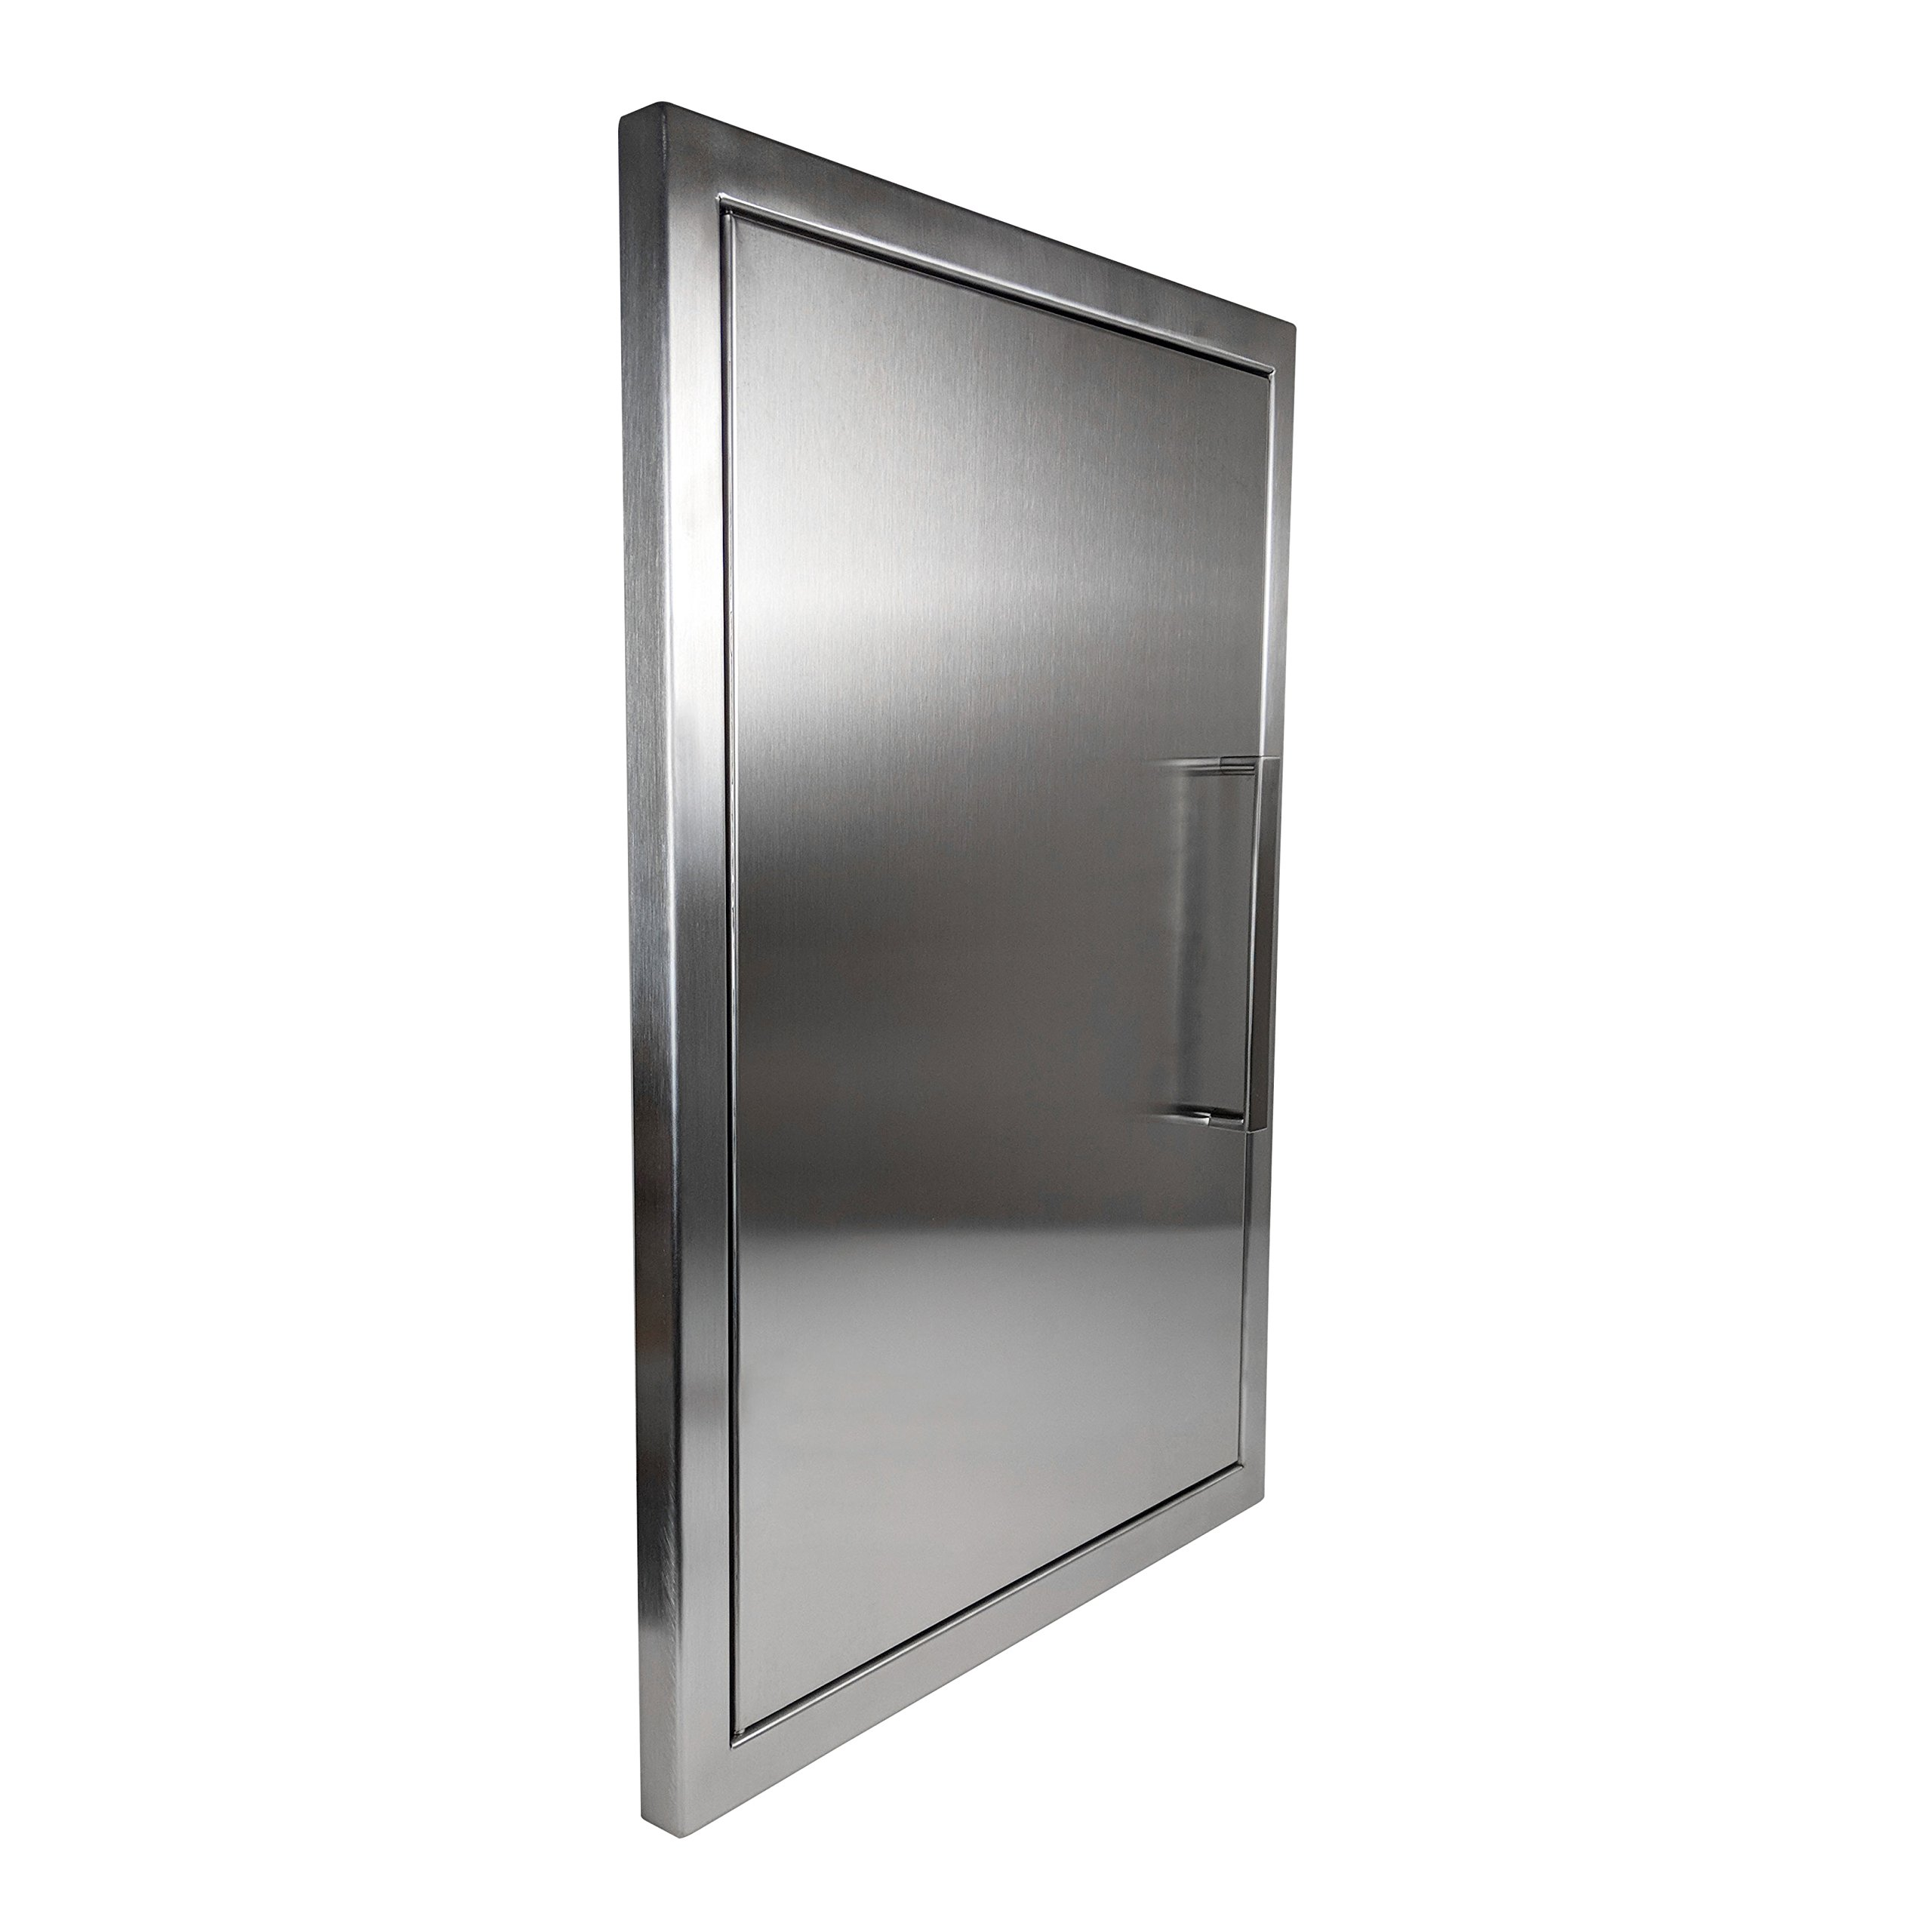 Katzington BBQ ACCESS DOOR - Modern Style - 17'' x 24'' - 304 Grade Stainless Steel - Double Walled Construction - Barbecue Island/Outdoor Kitchen Access Door - Perfect Size for Propane Tank Storage